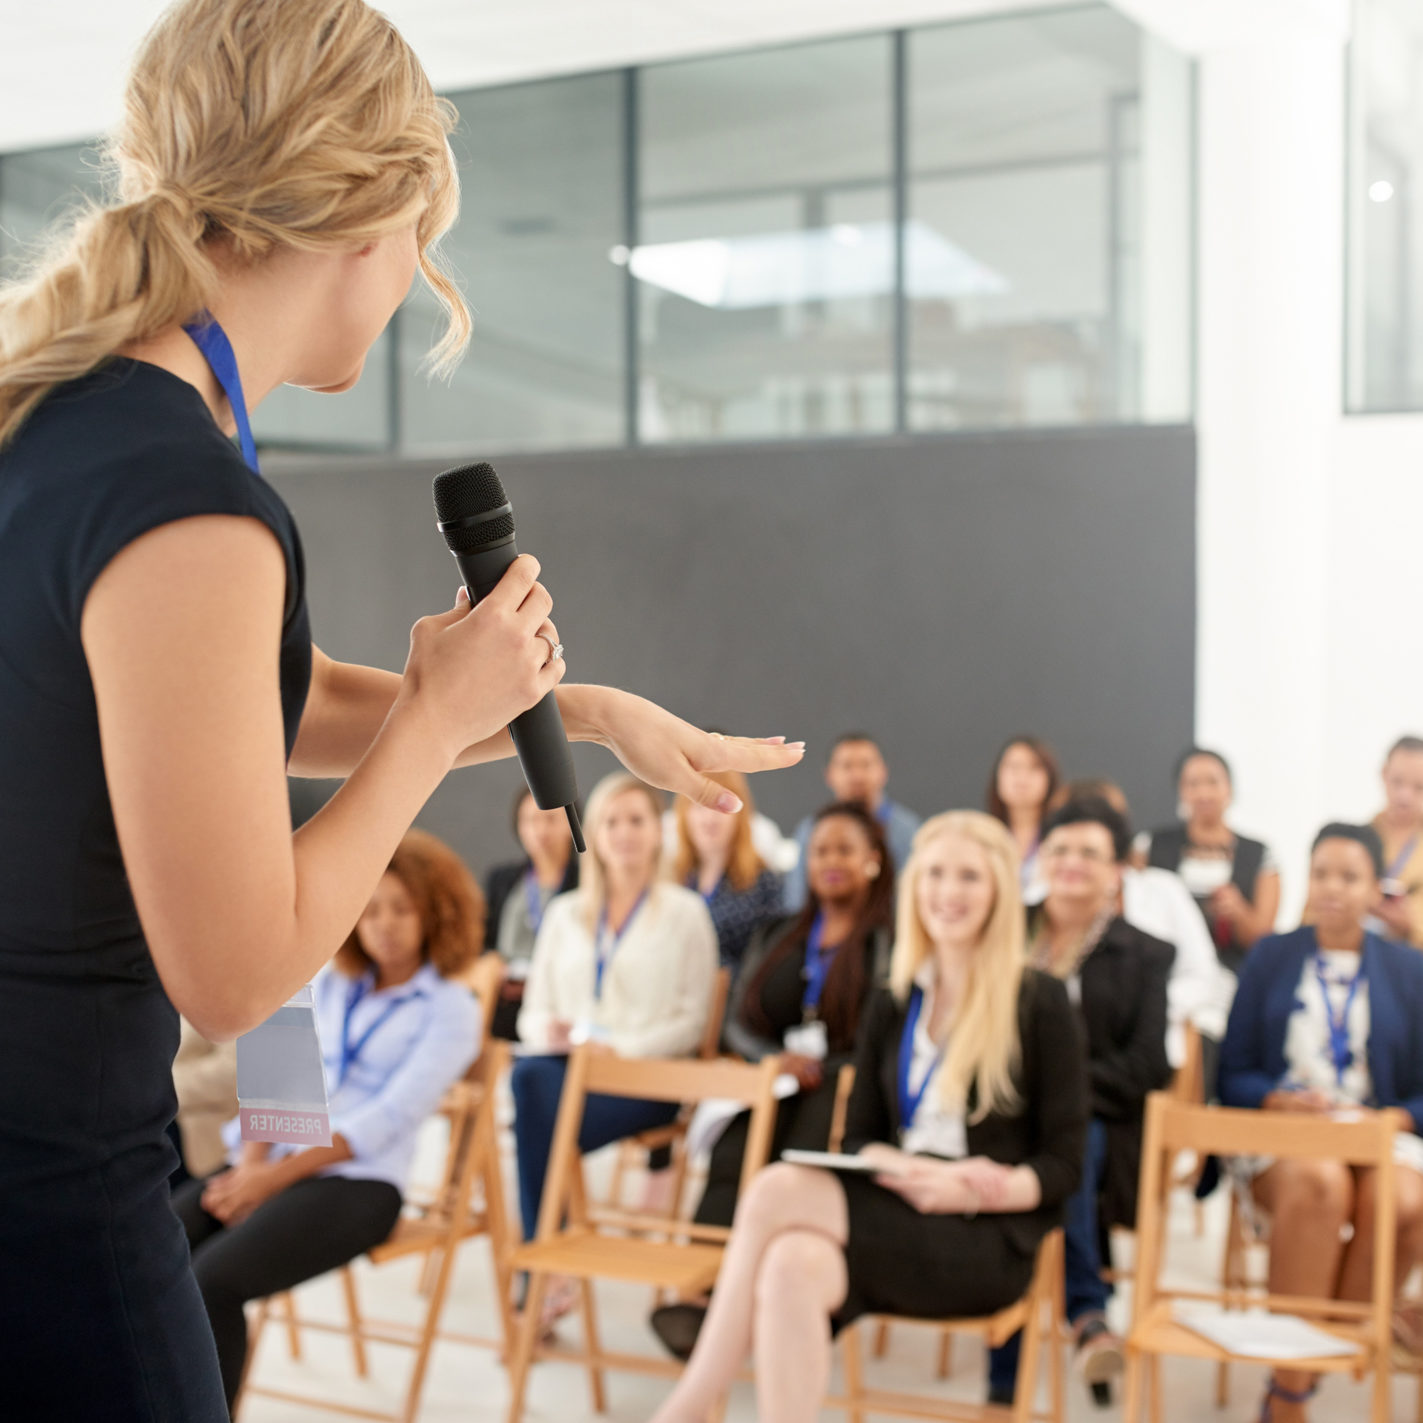 Shot of a young businesswoman delivering a presentation at a conference